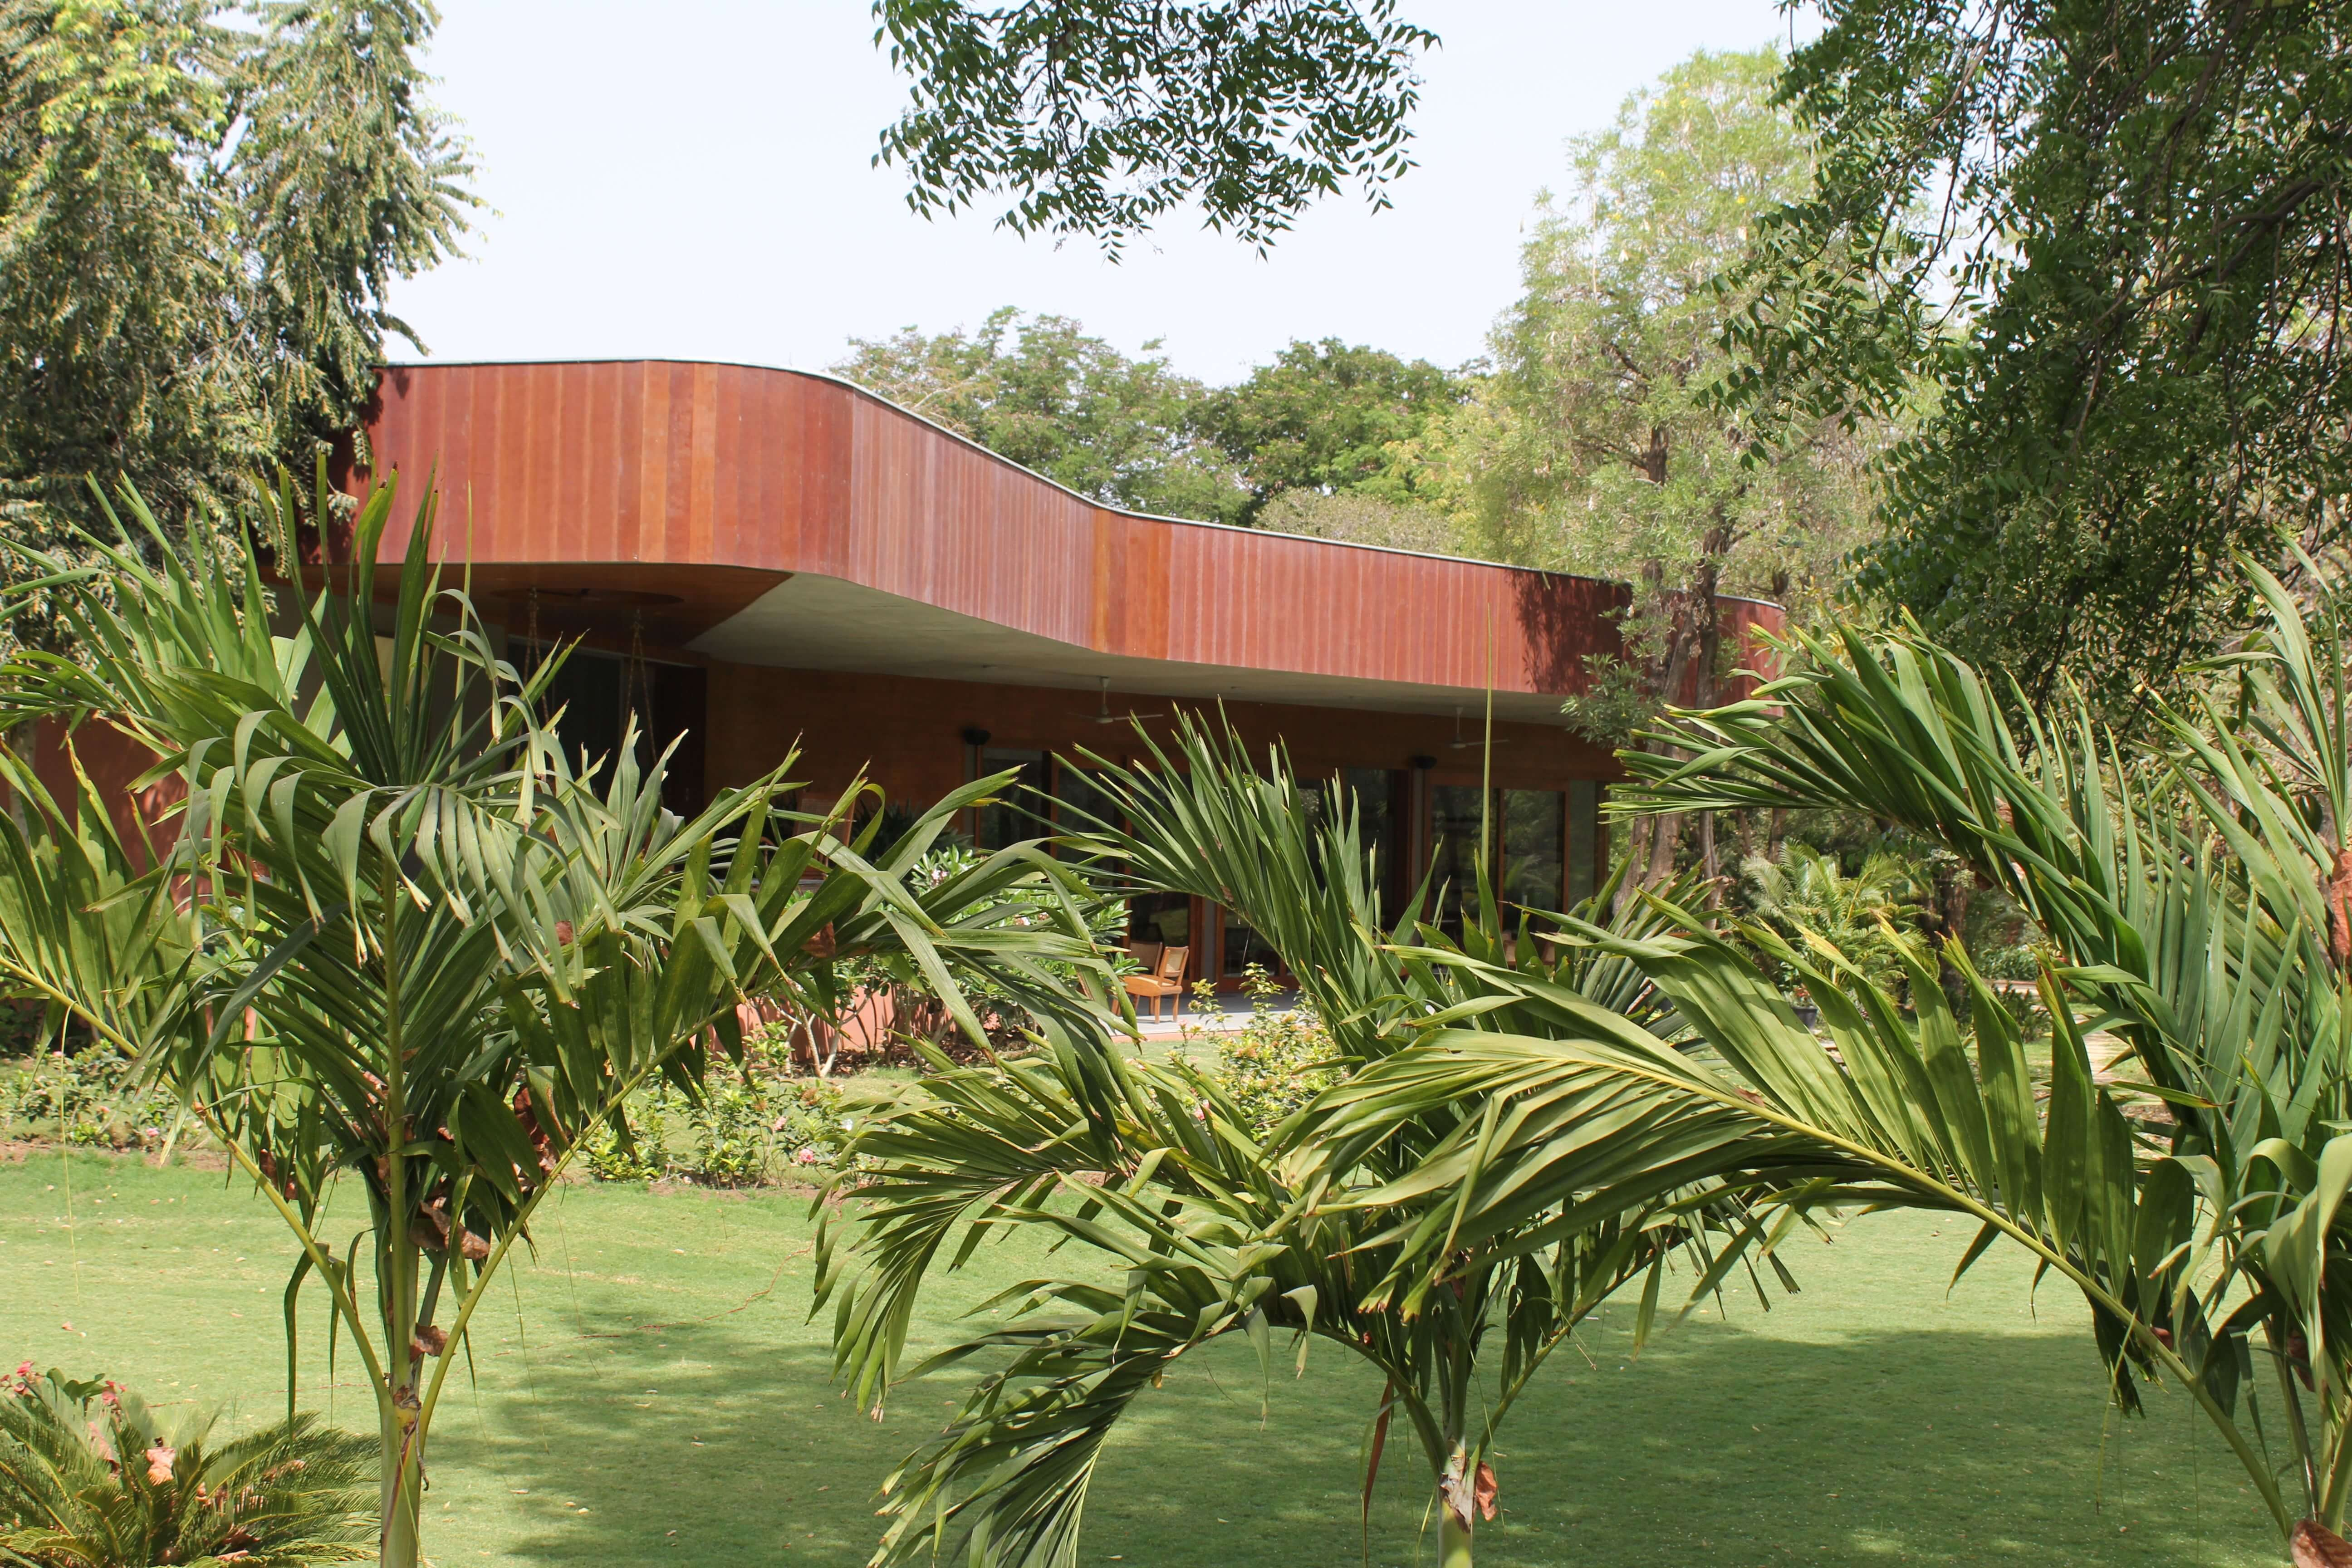 Anand Bungalow